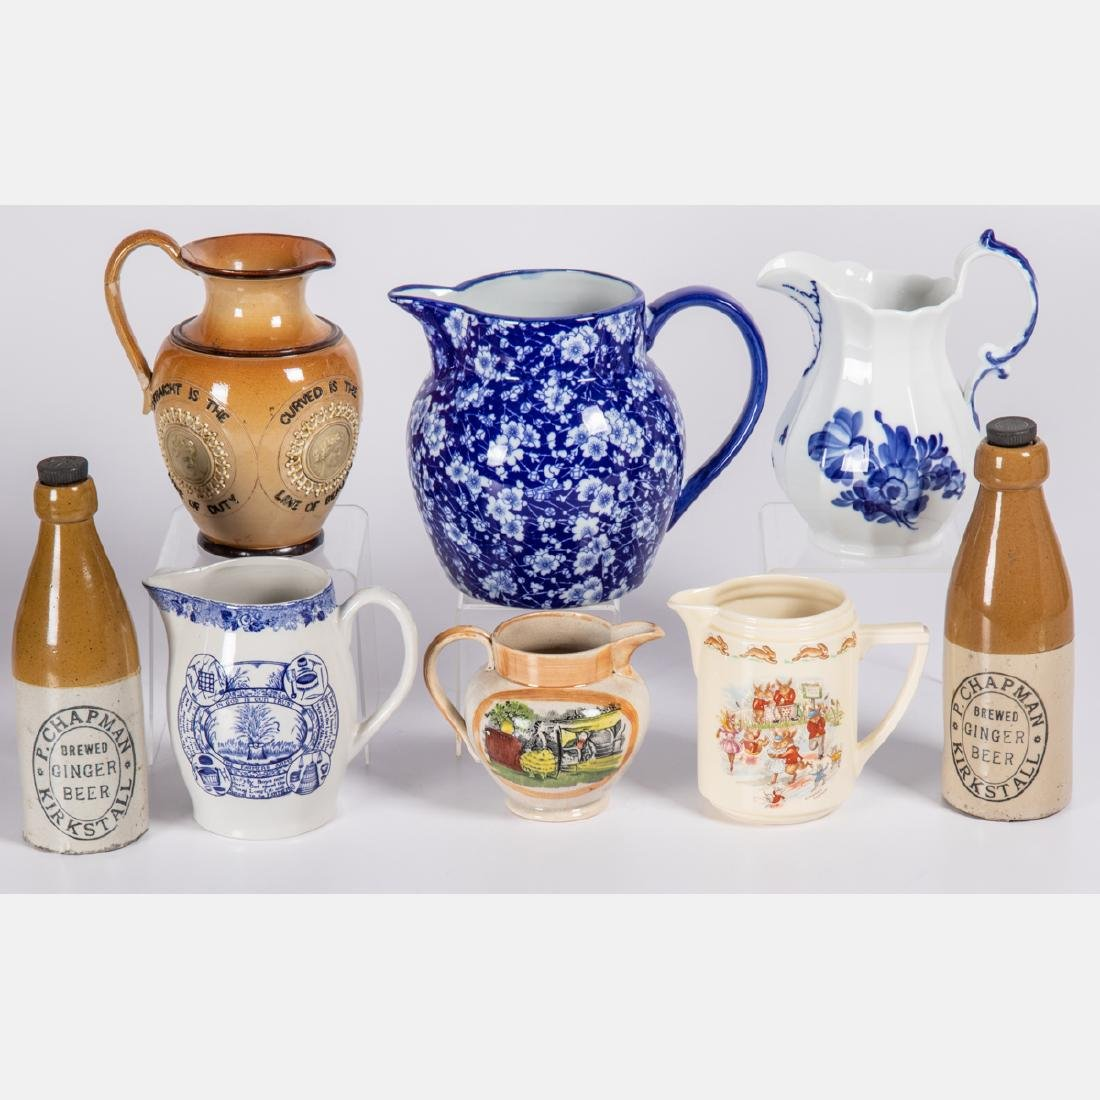 A Miscellaneous Collection of Ceramic Pitchers and